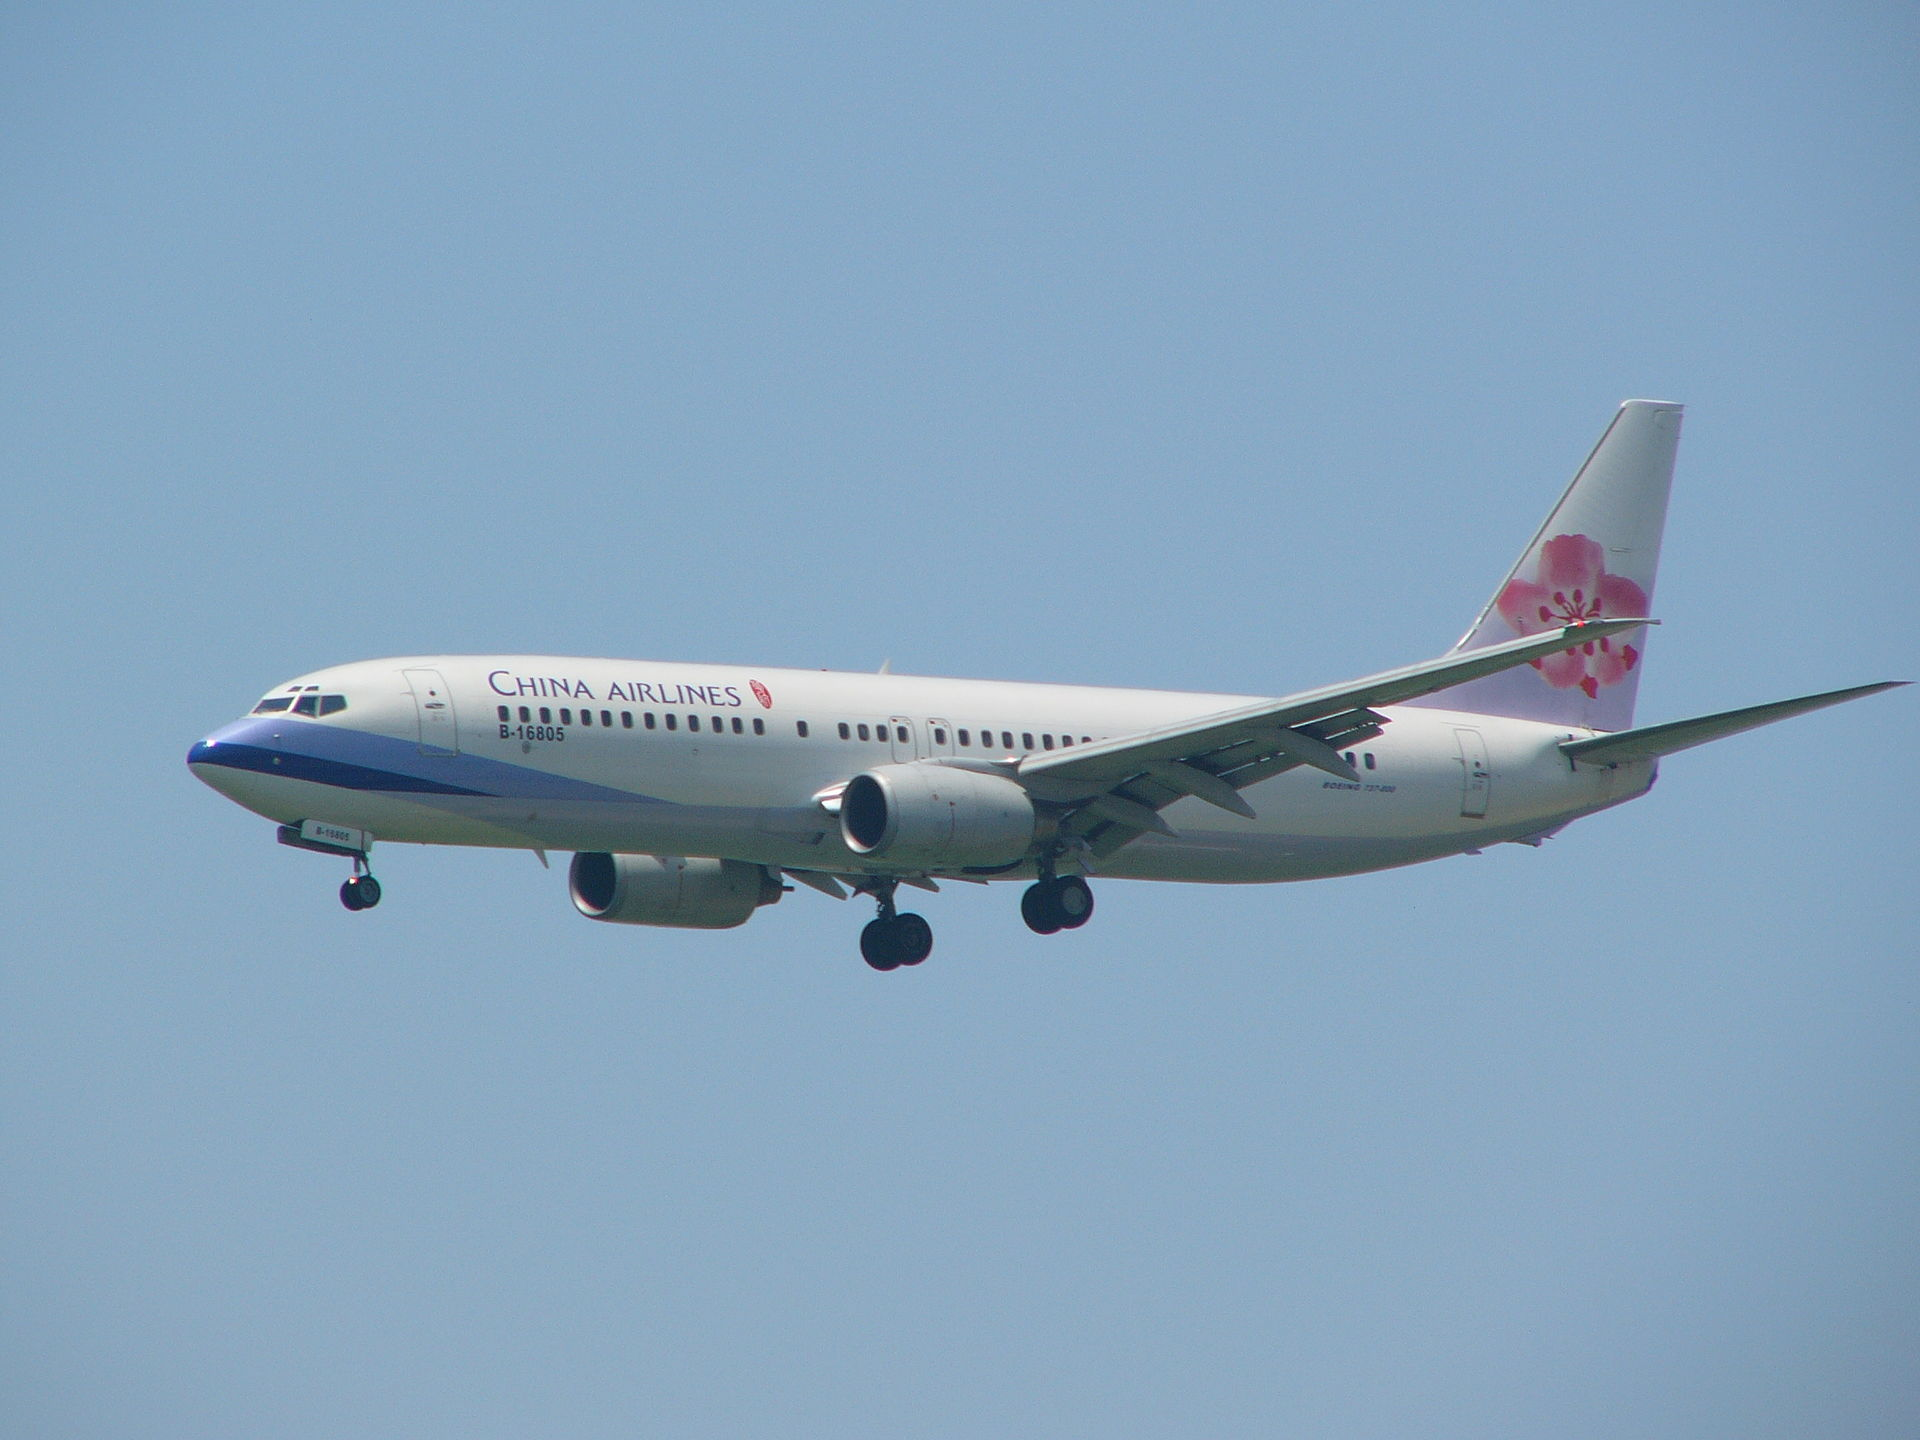 China Airlines Wikimedia Commons